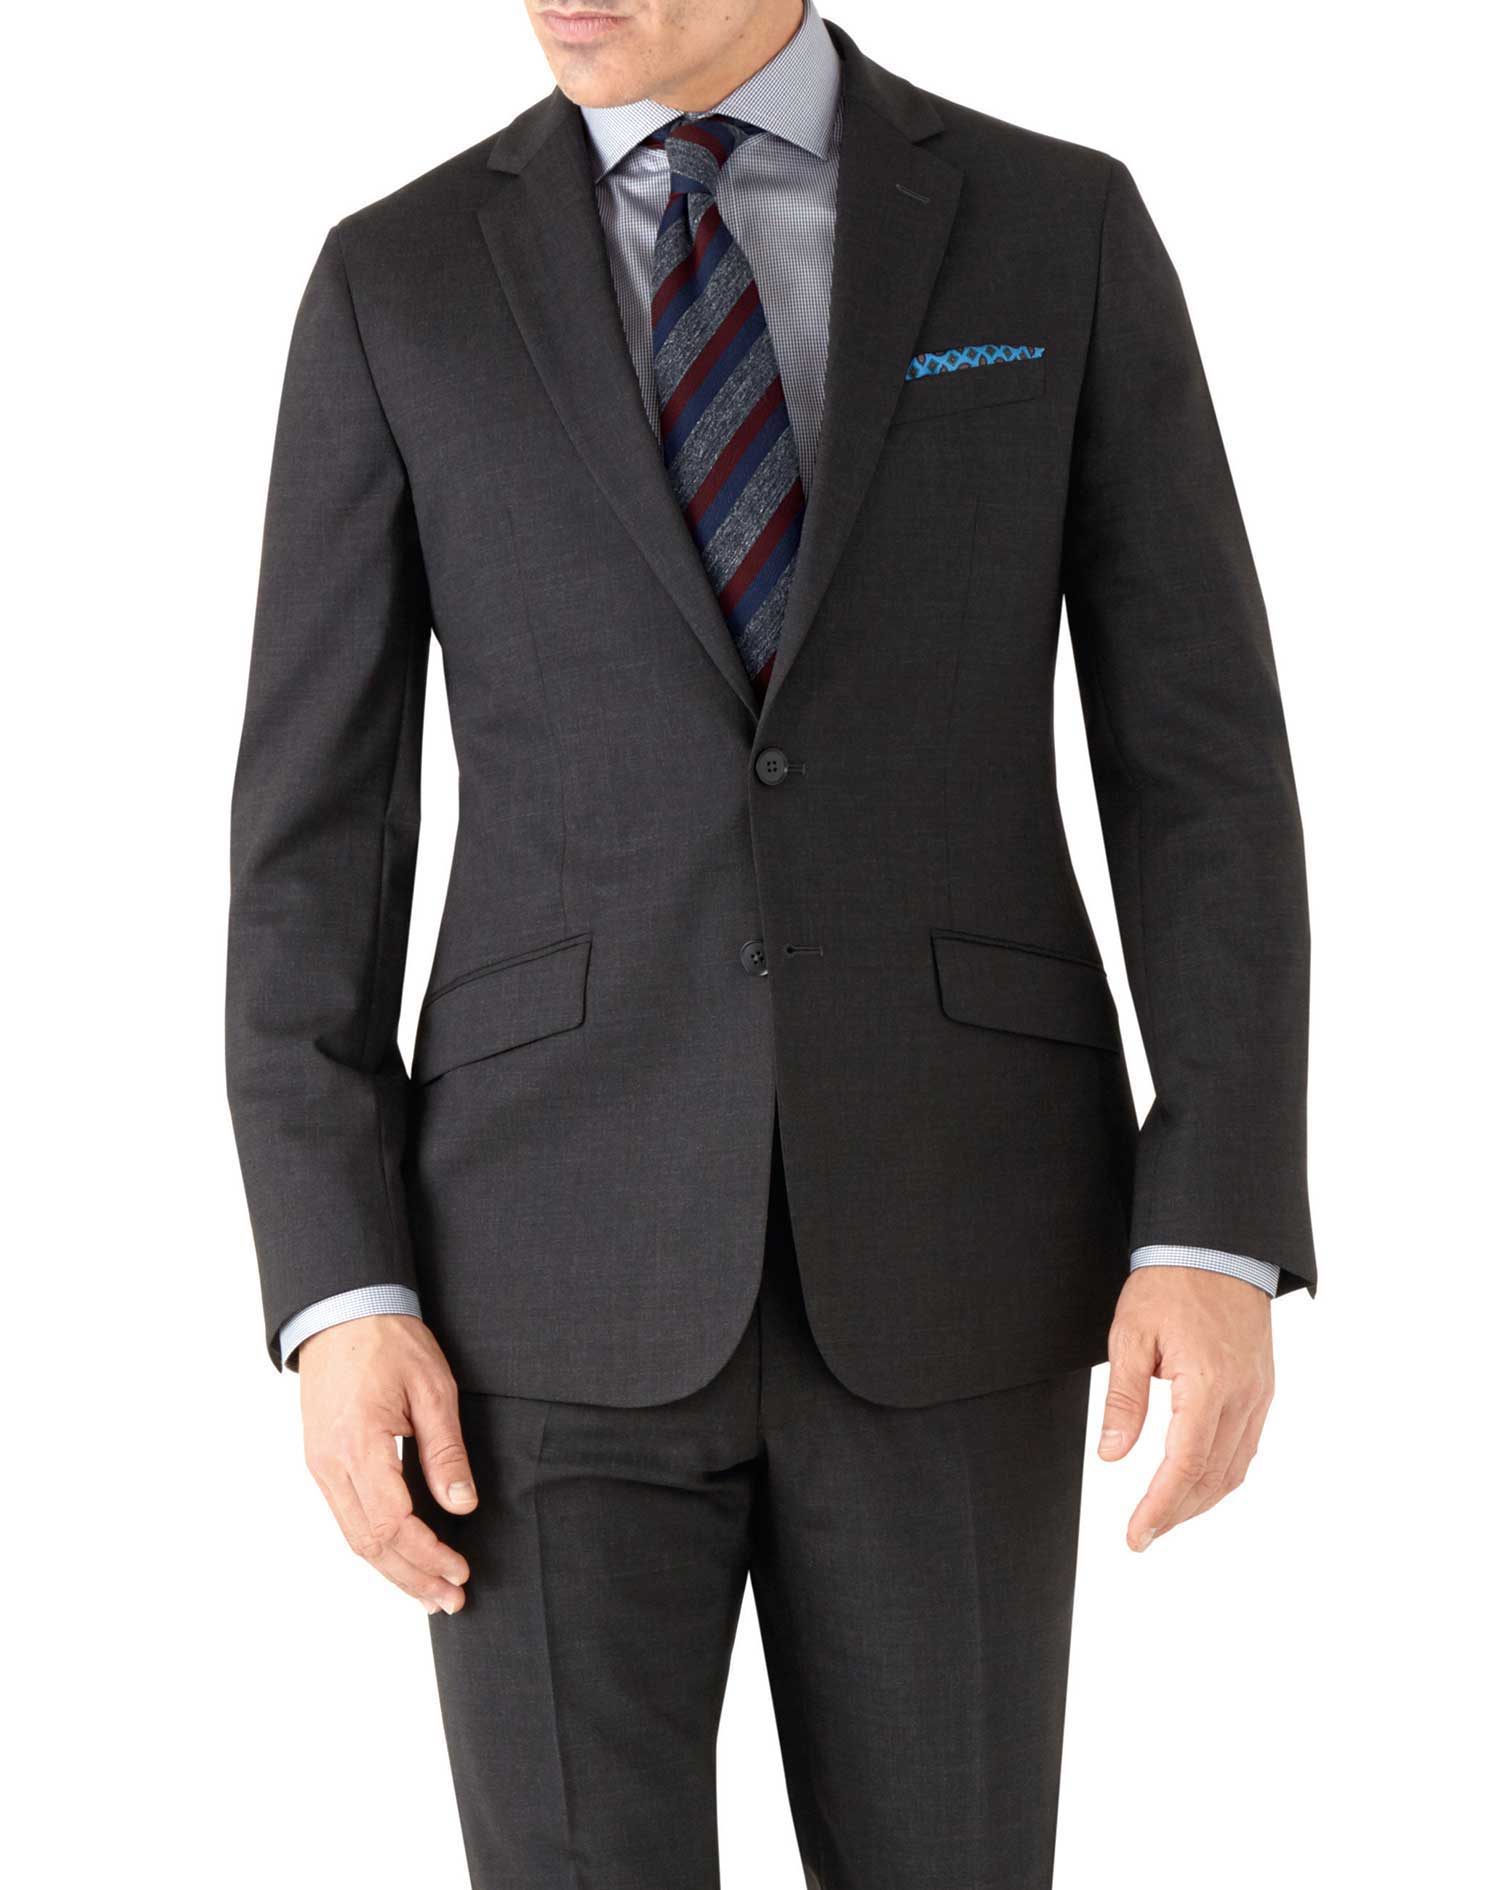 Charcoal Slim Fit Performance Suit Wool Stretch Jacket Size 40 Long by Charles Tyrwhitt